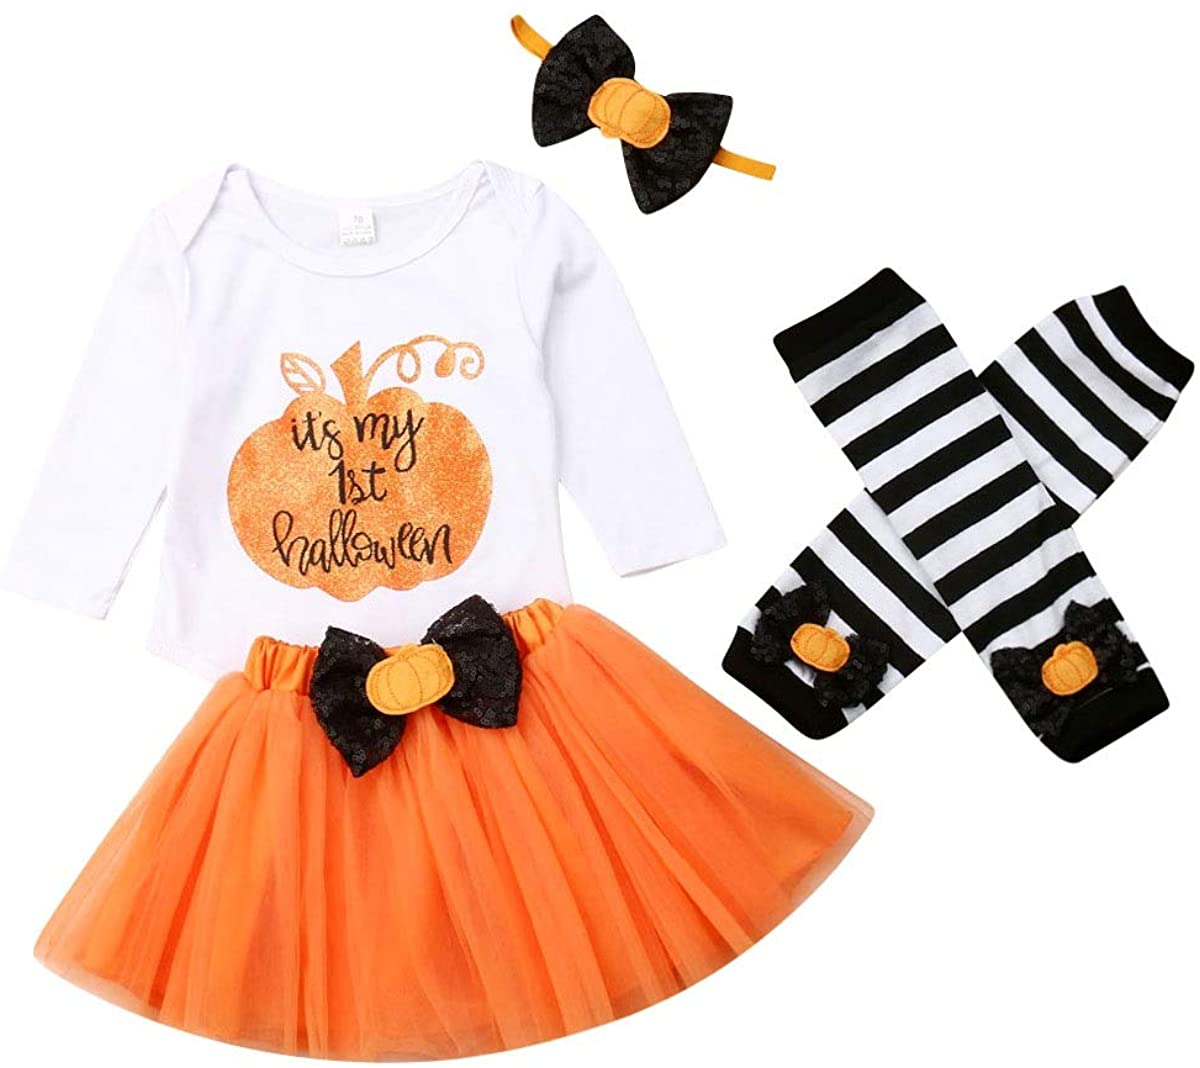 Toddler Baby Girls Outfit My First Halloween Top Romper+ Orange Tutu Skirt+ Striated Leggings +Headband 4Pcs Outfit Set